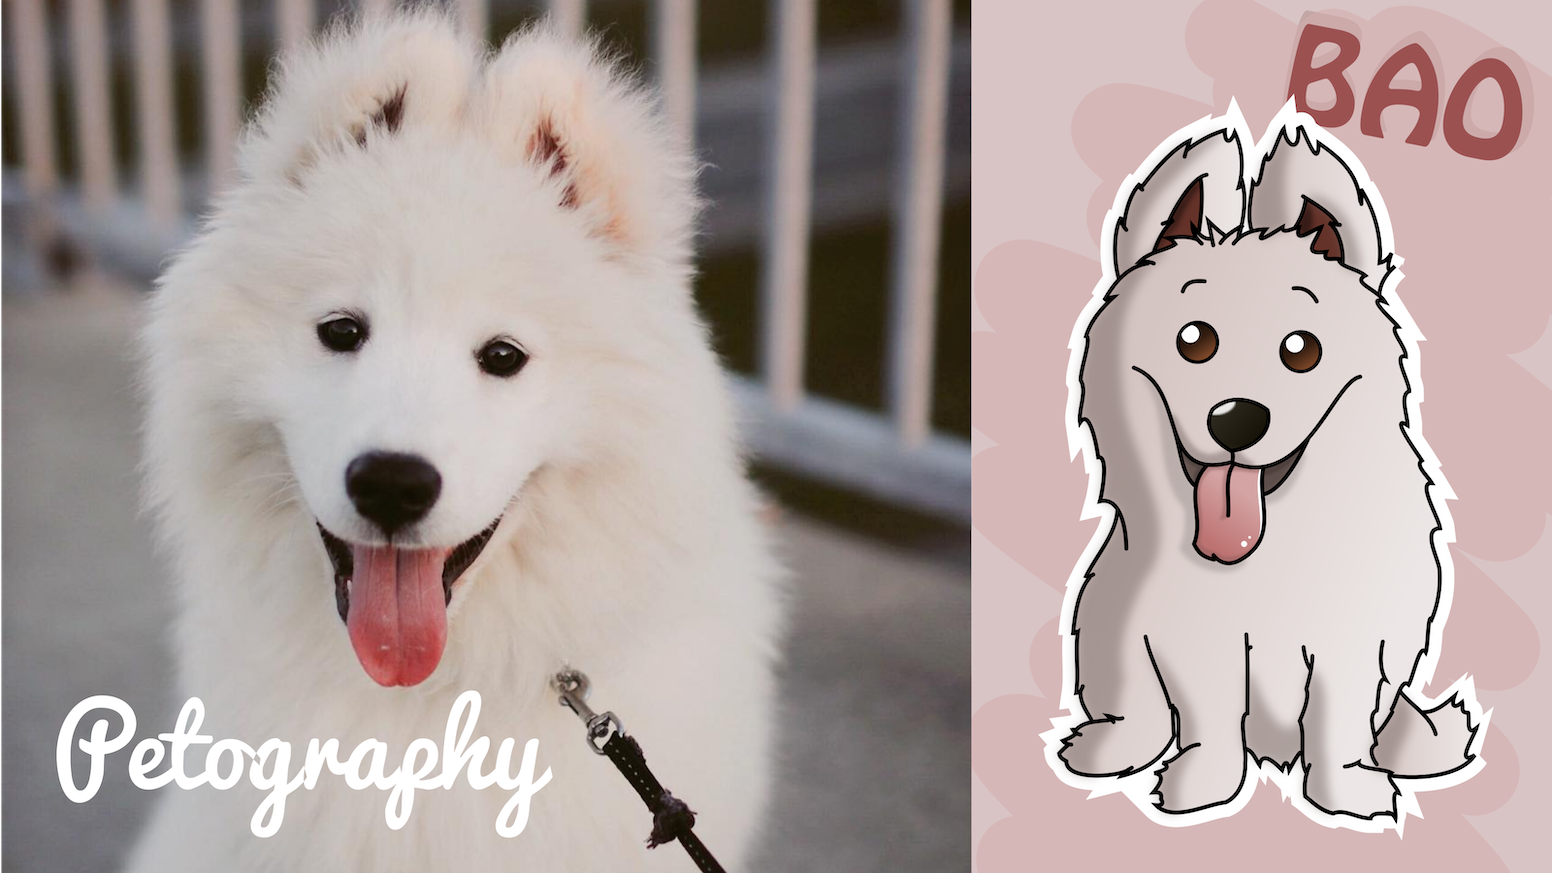 petography illustrations of your pet by qb kickstarter